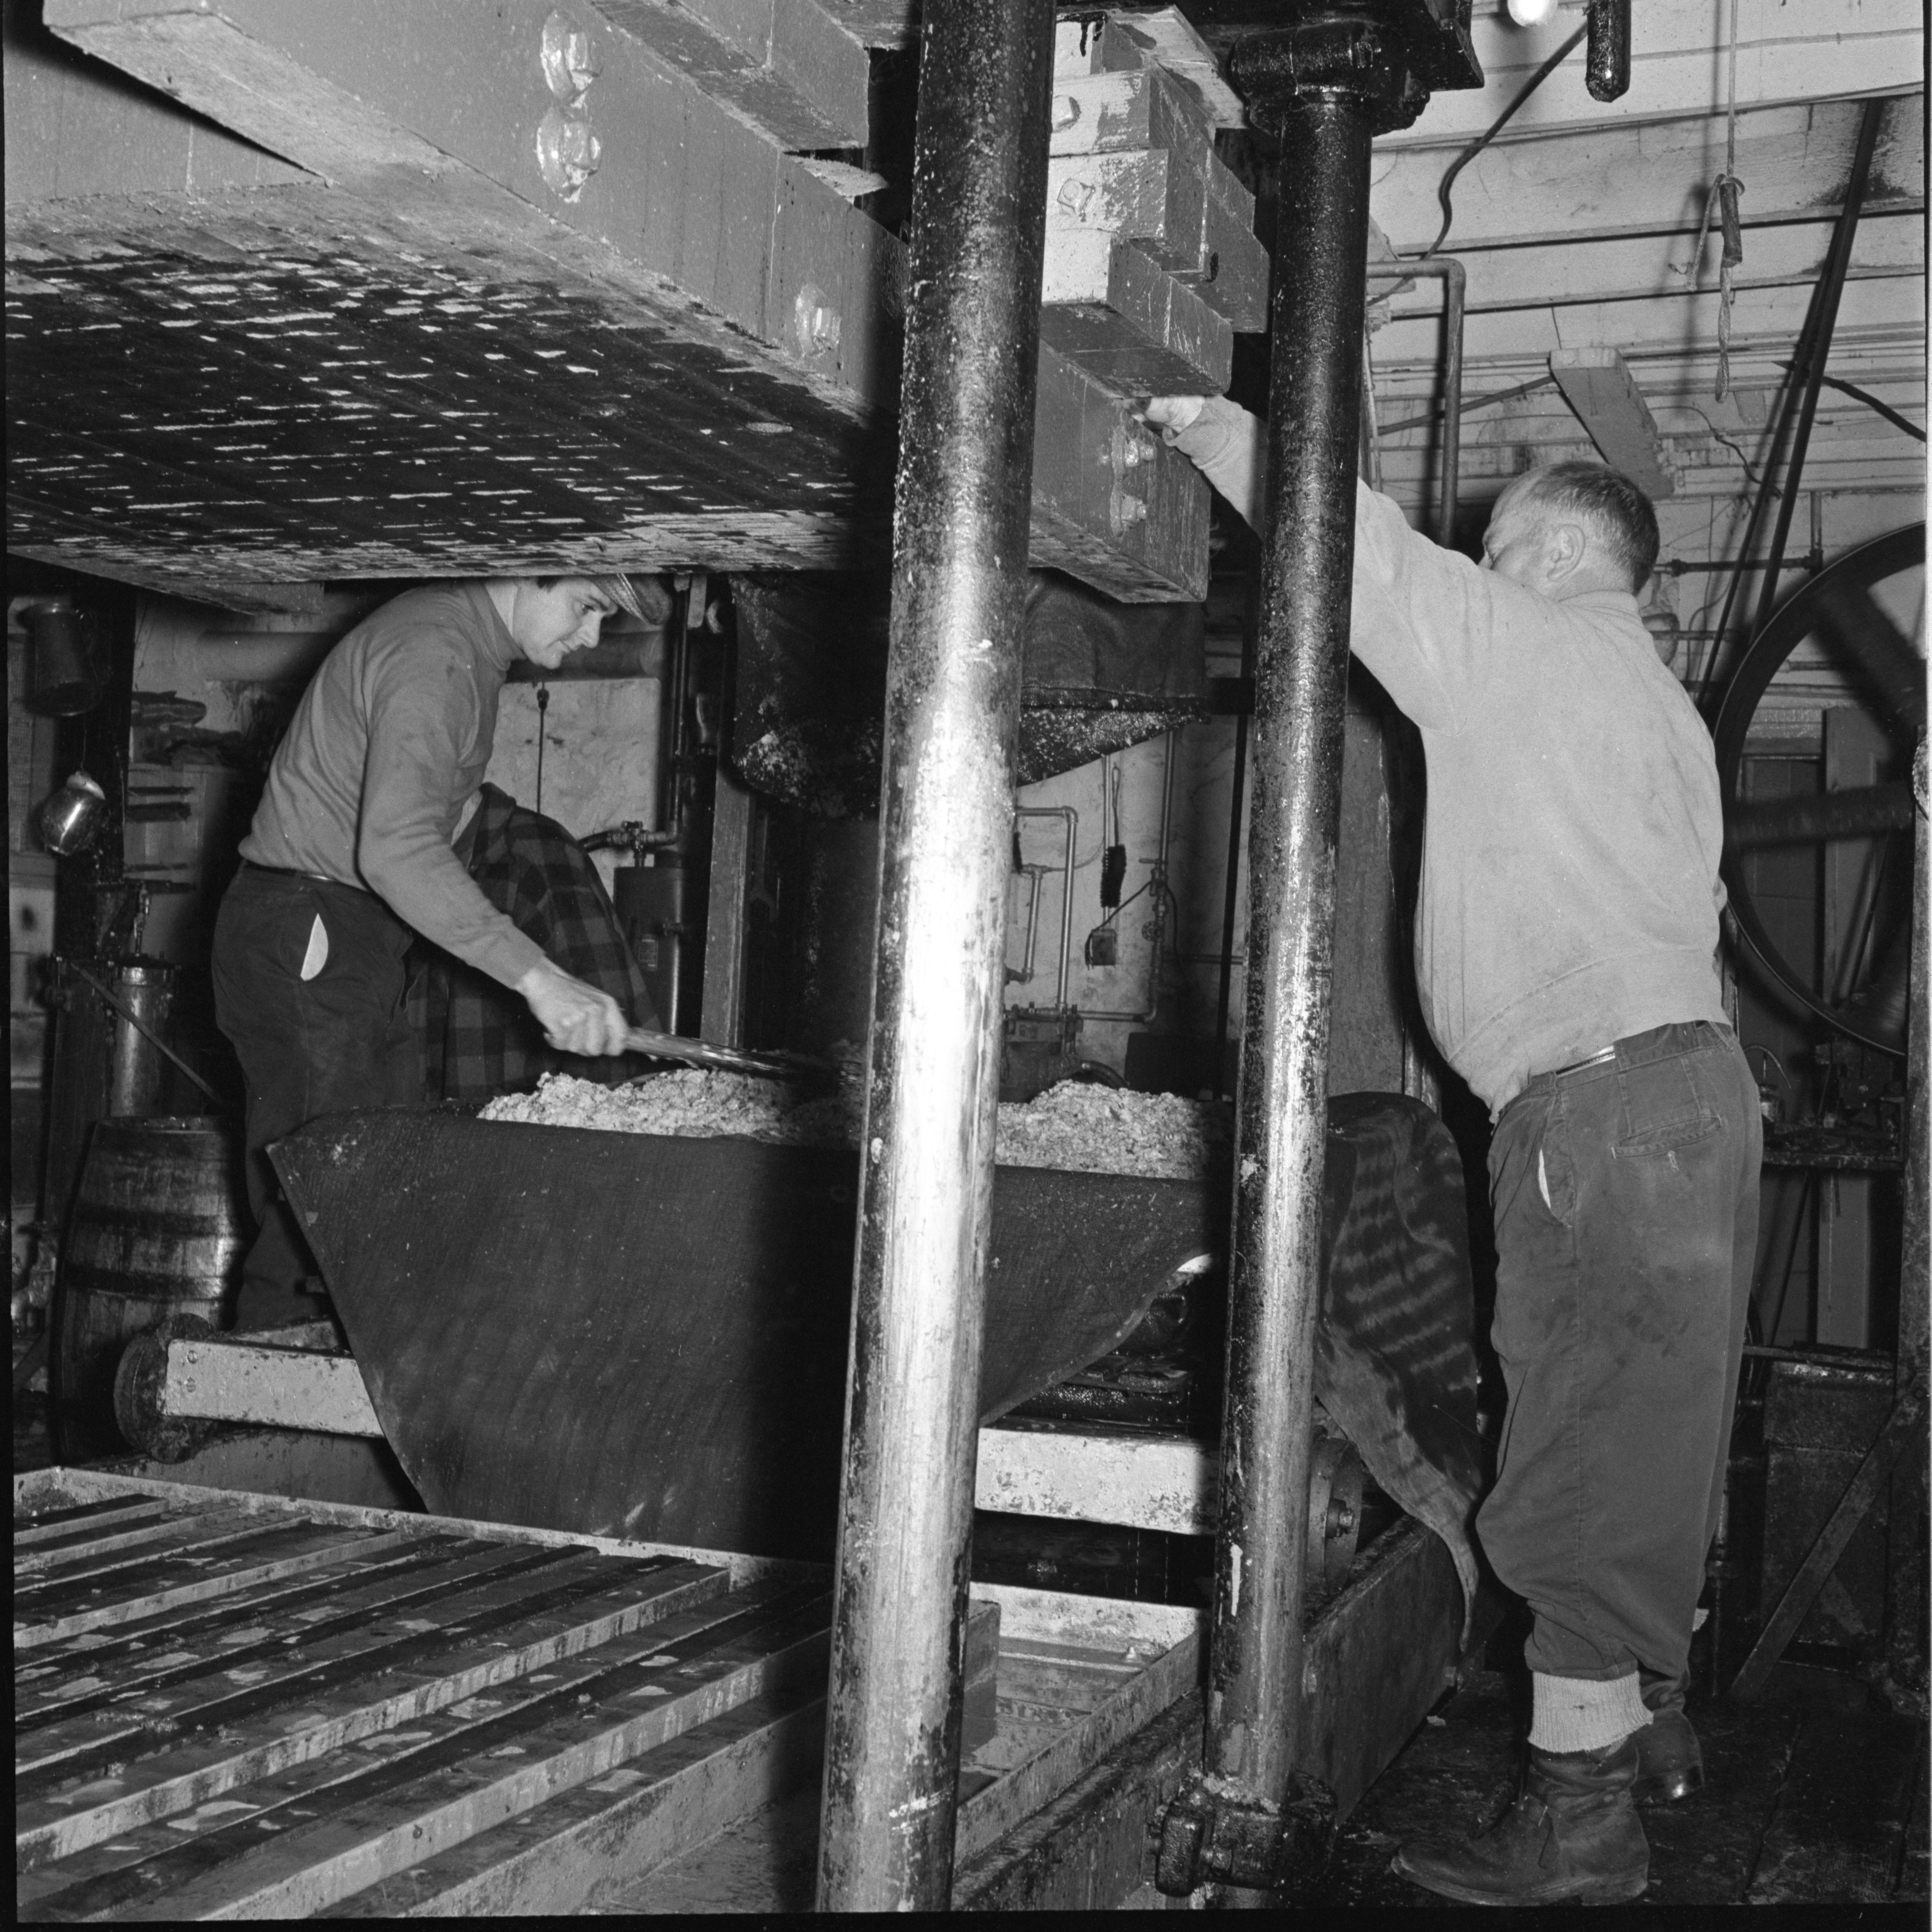 Preparing Apples For Pressing At The Dexter Cider Mill, November 1966 image